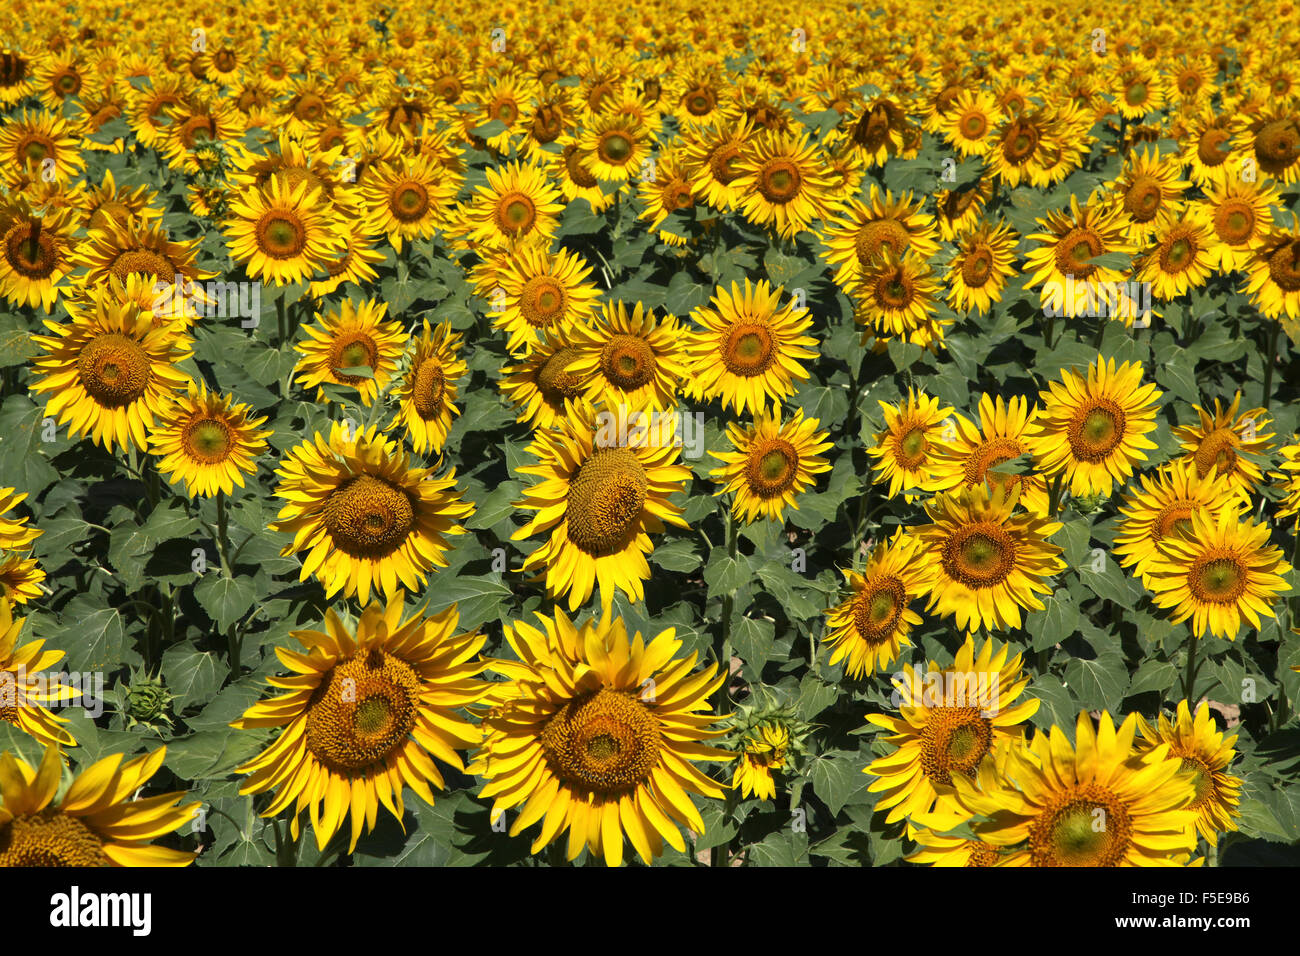 Sunflowers at Arles Vincent van Gogh France Europe - Stock Image